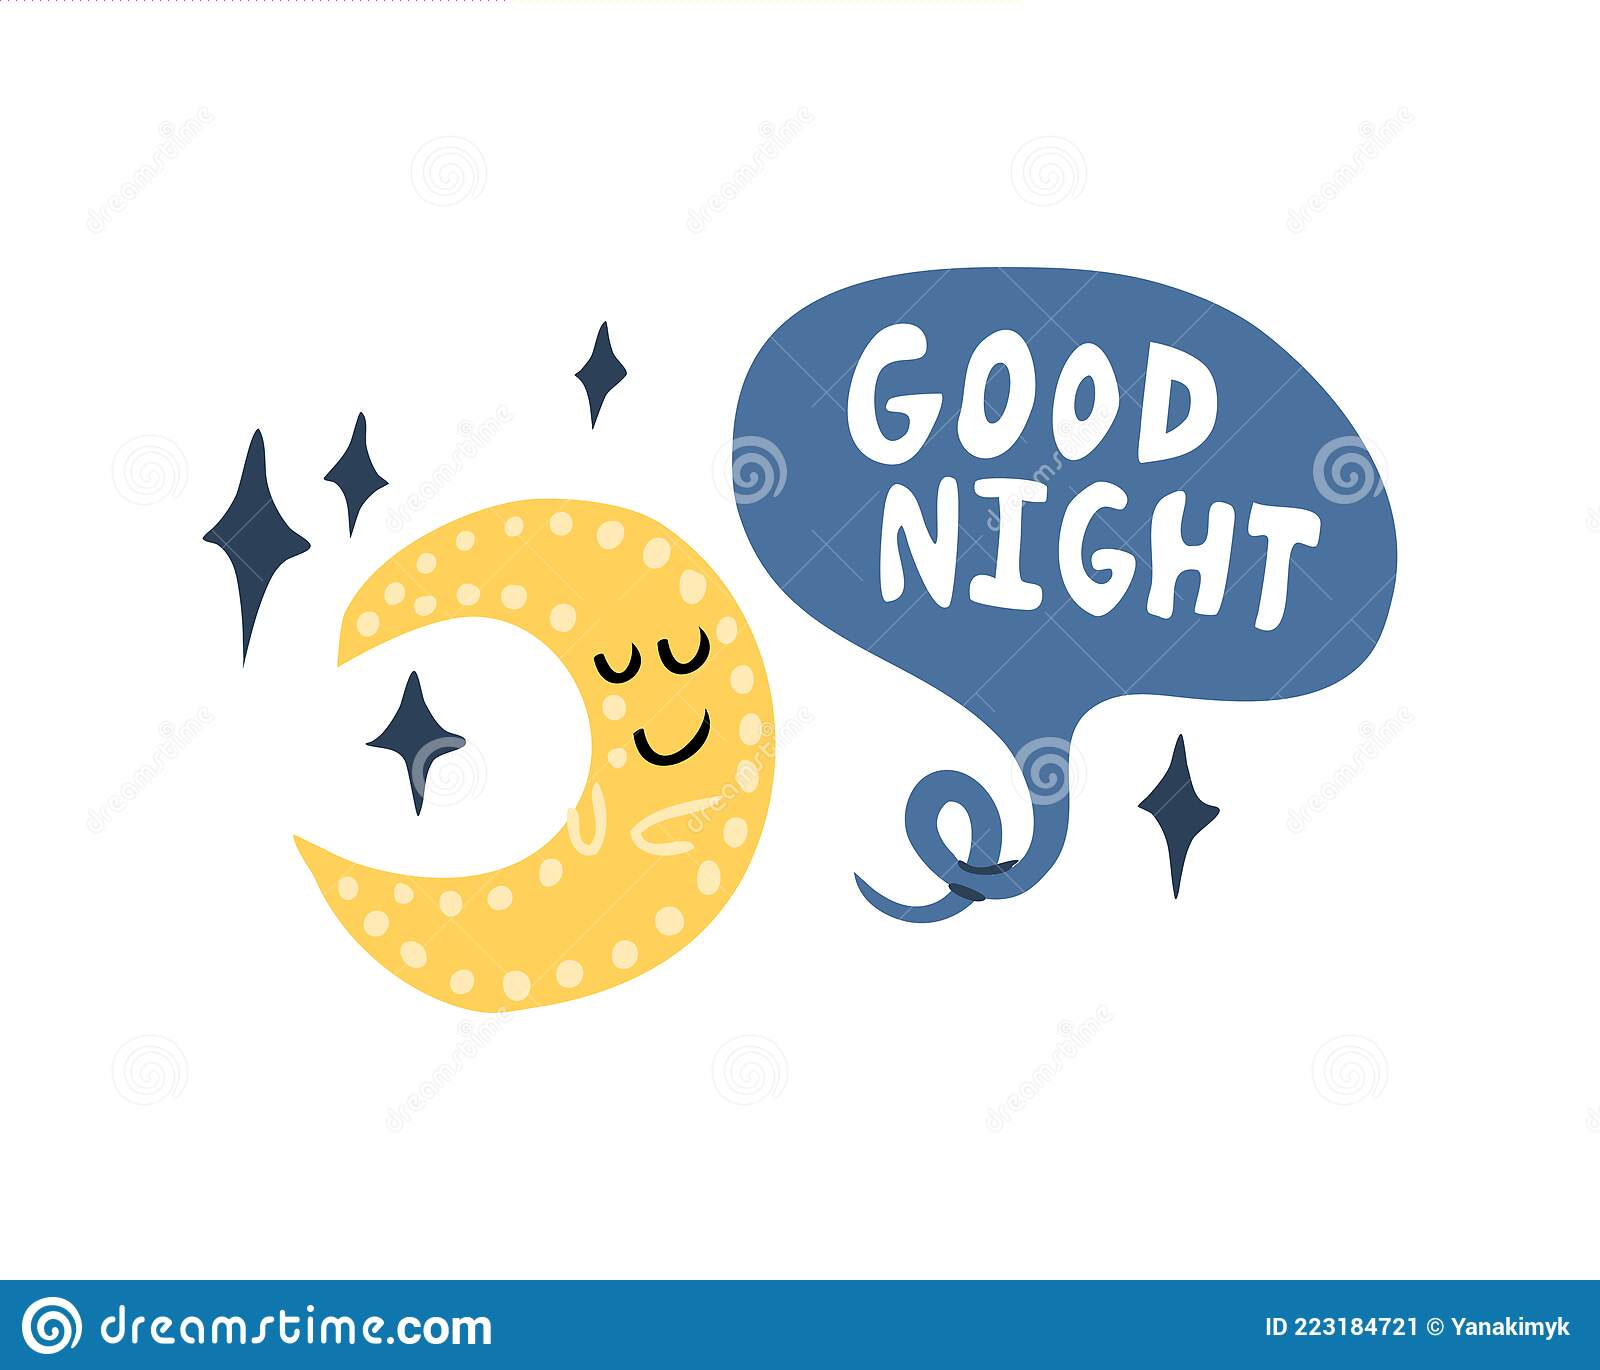 Images simple good night 95 Sweet